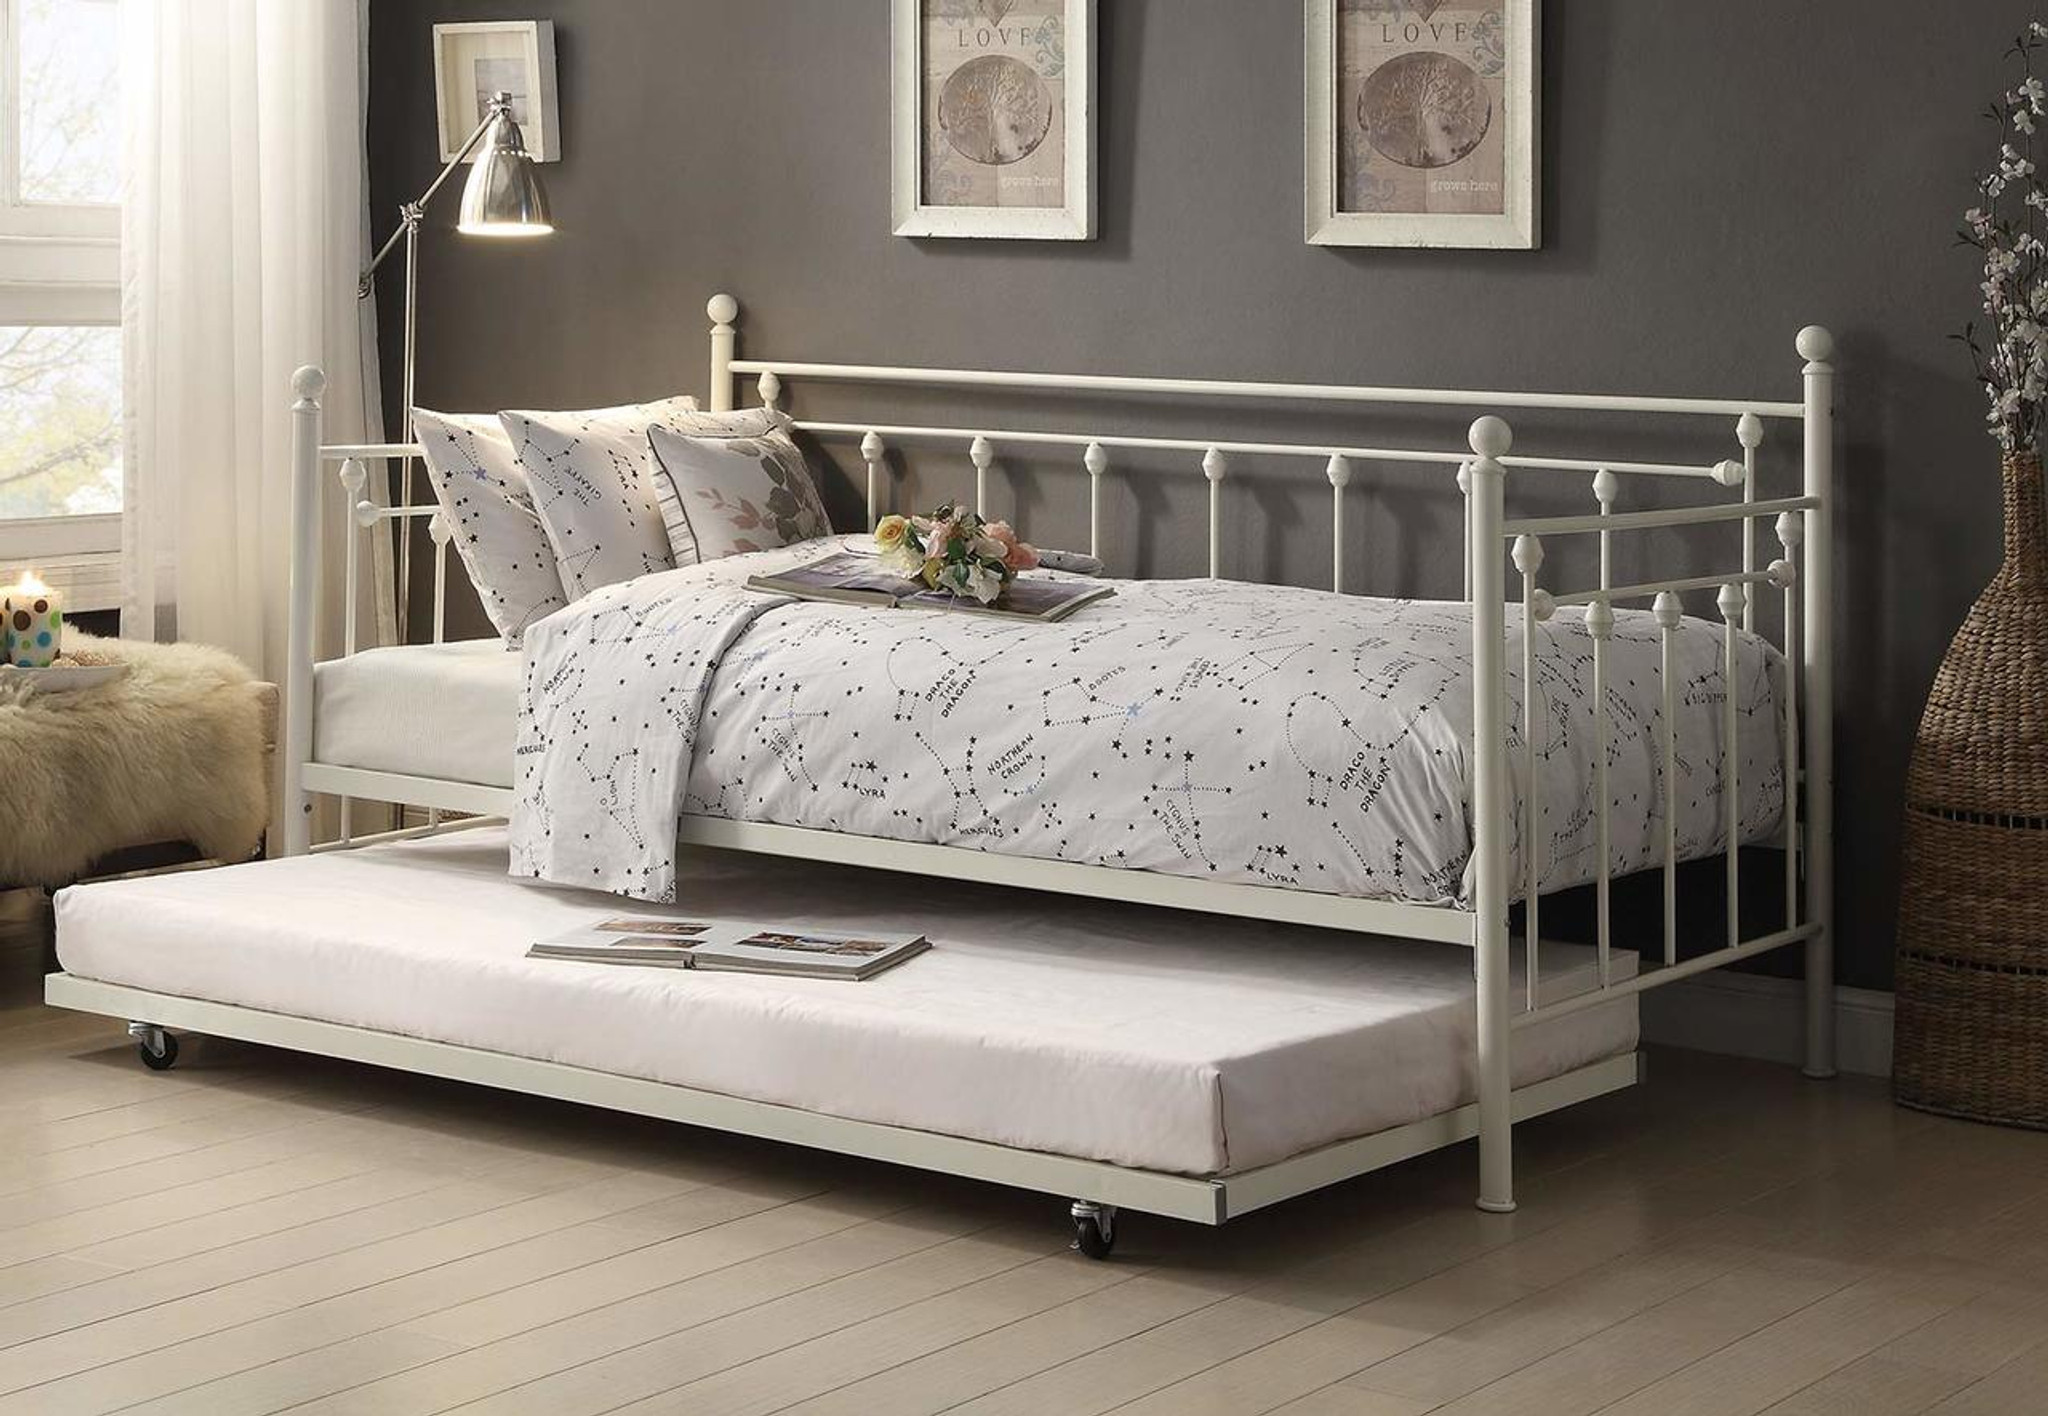 4965w Nt Lorena Metal Daybed With Trundle Collection By Home Elegance